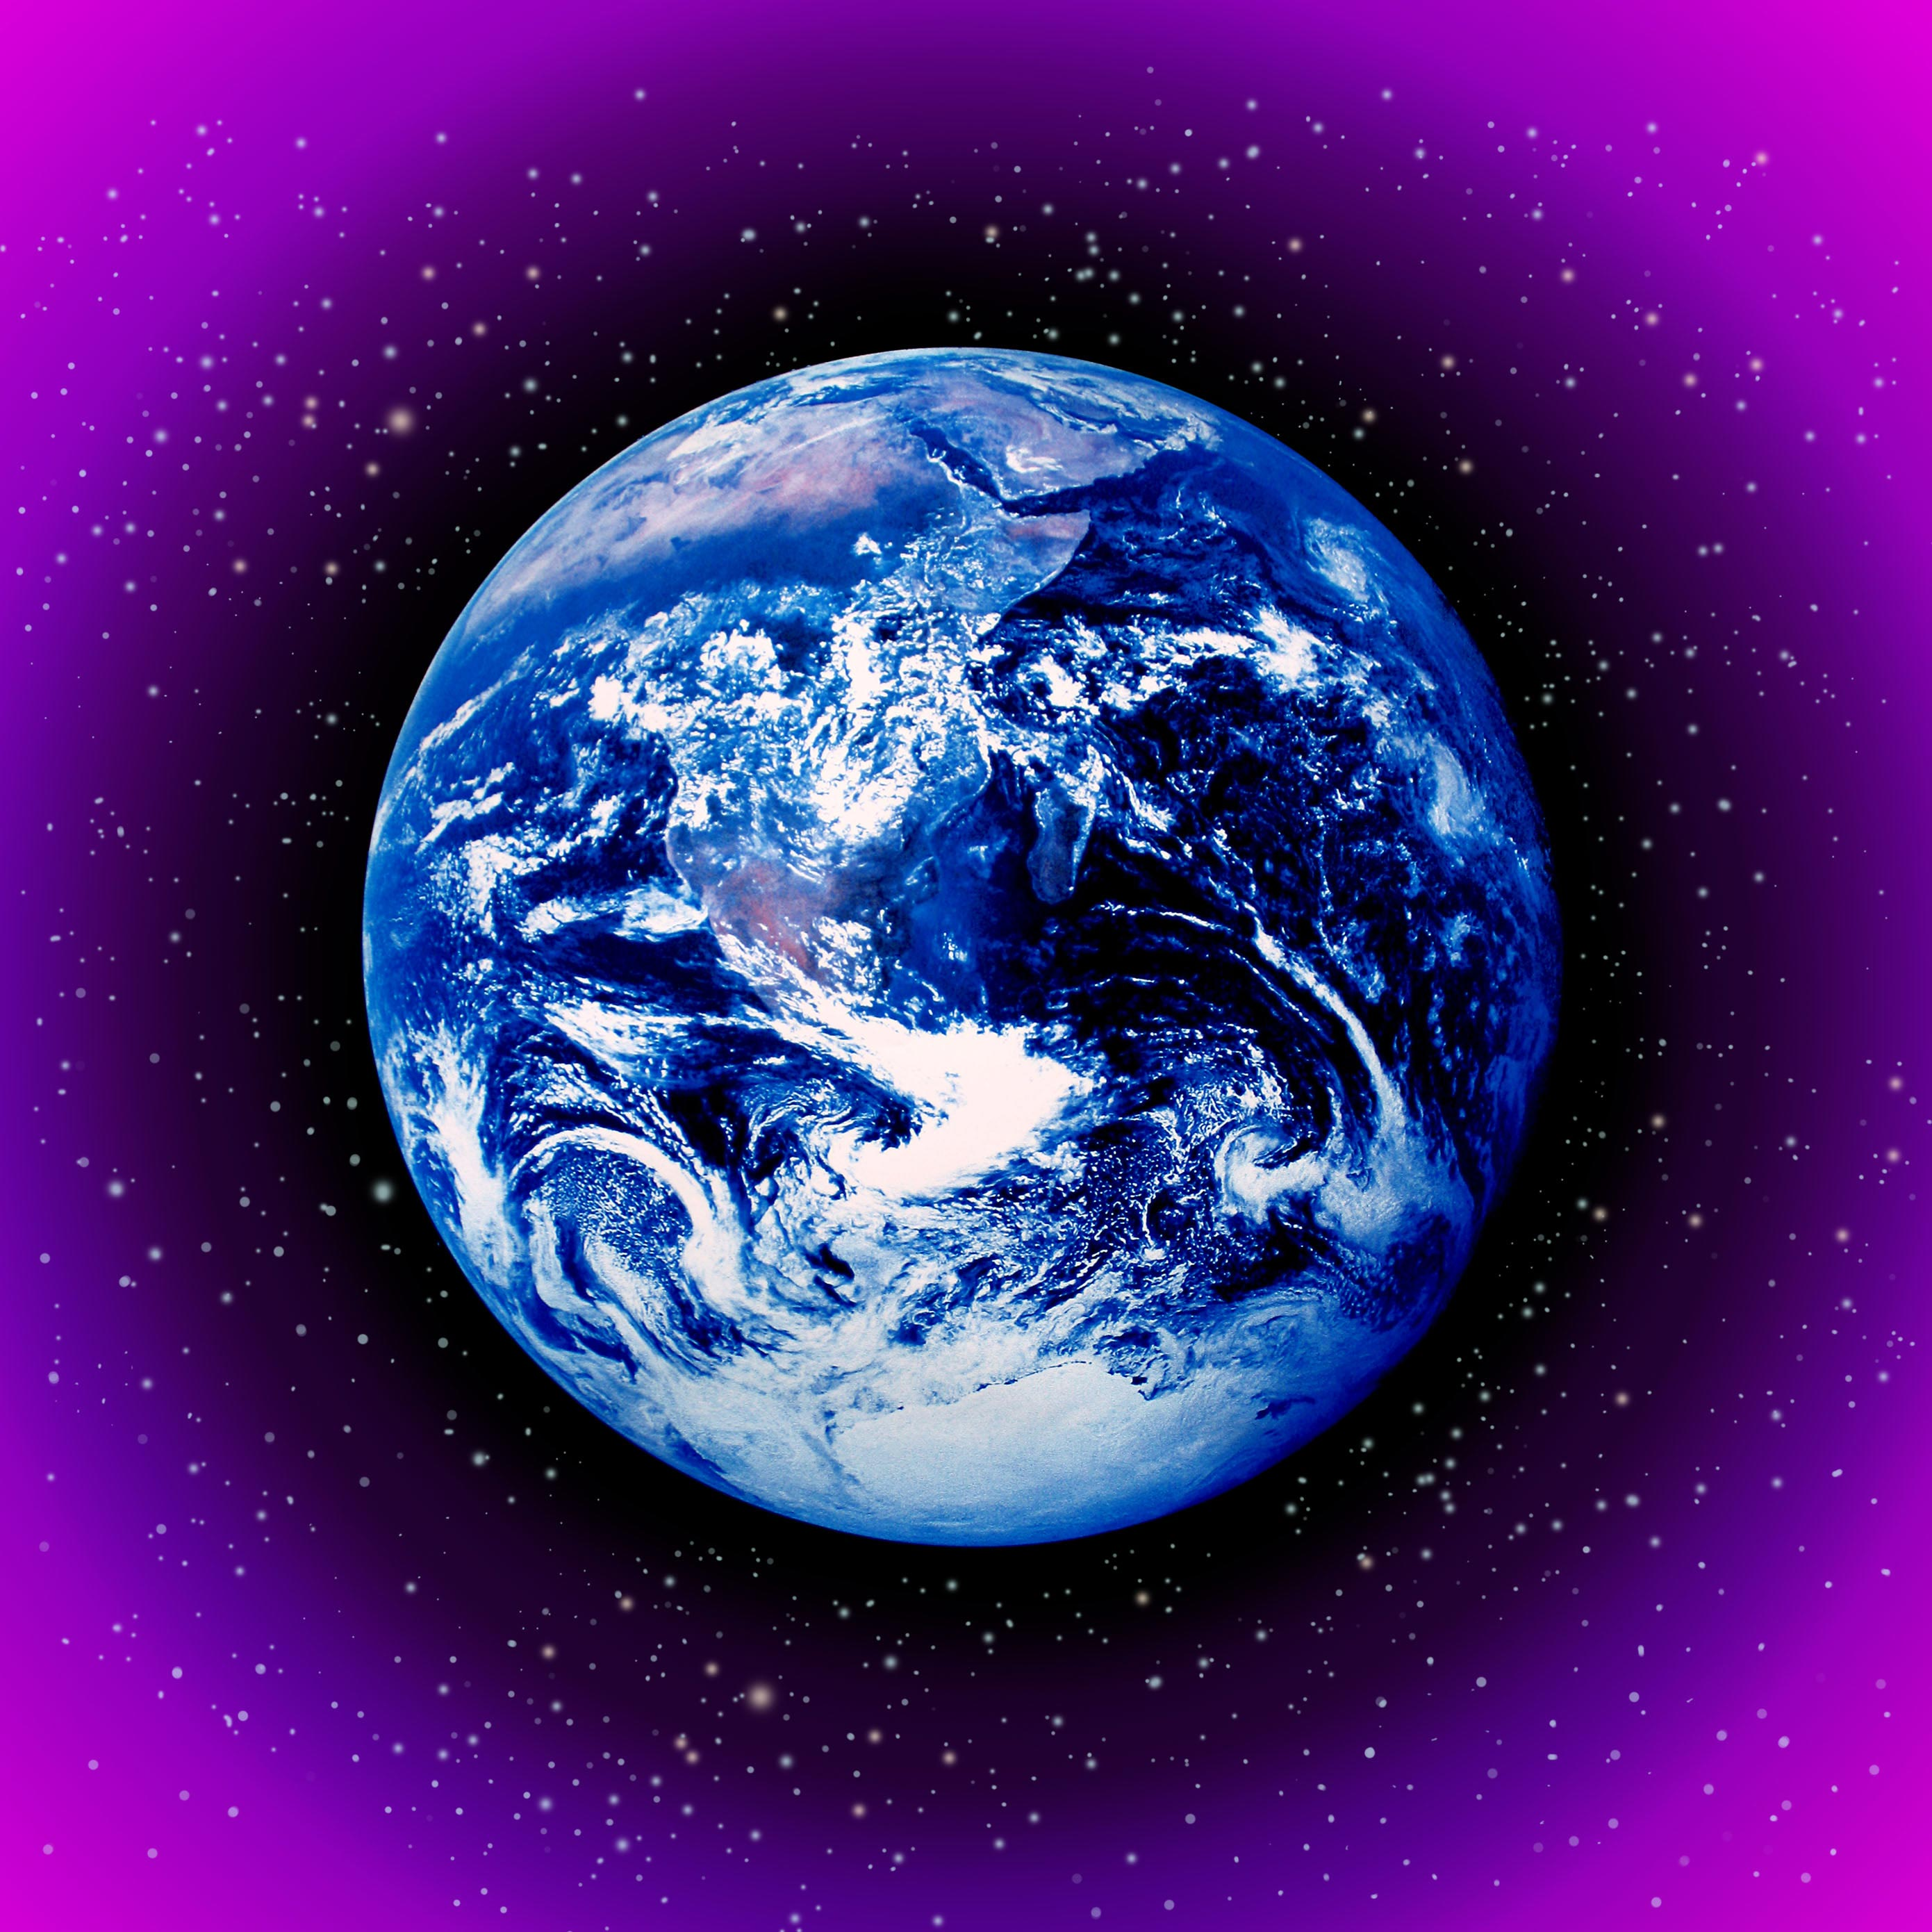 Image of planet Earth that can be used for visualization during the sixth stage.